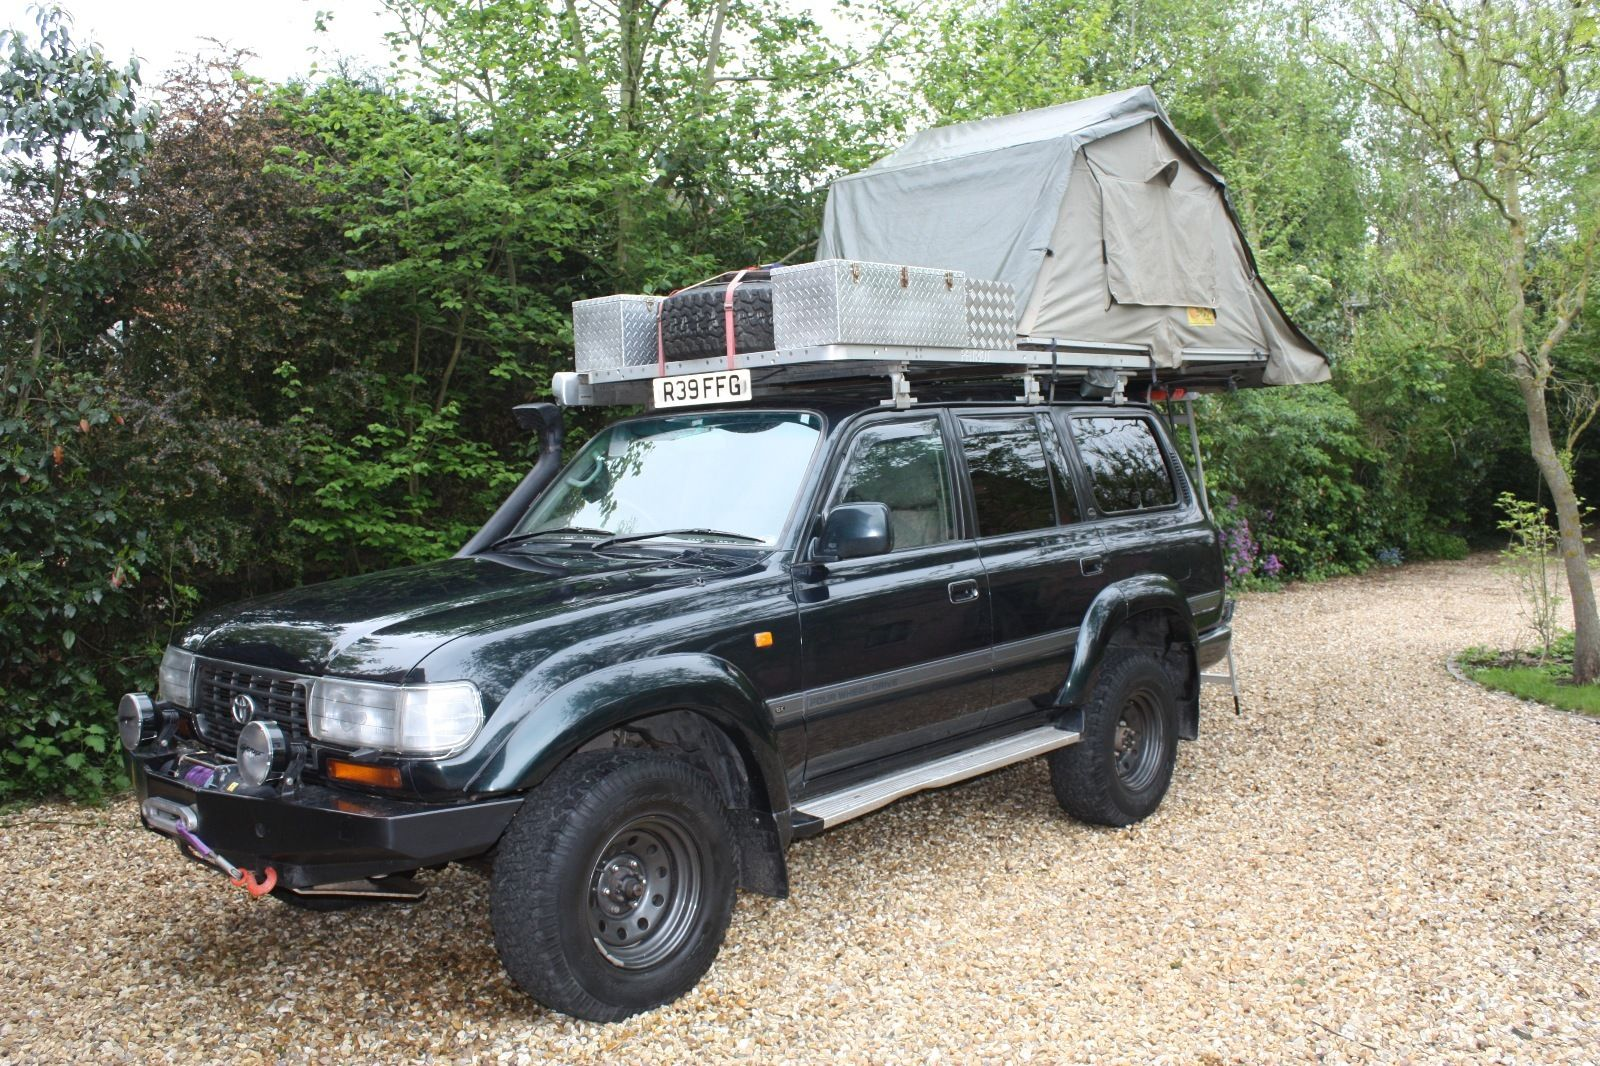 TOYOTA LAND CRUISER AMAZON 4.2 TD GX 5 DOOR – FULLY PREPARED – £20,000 – UK